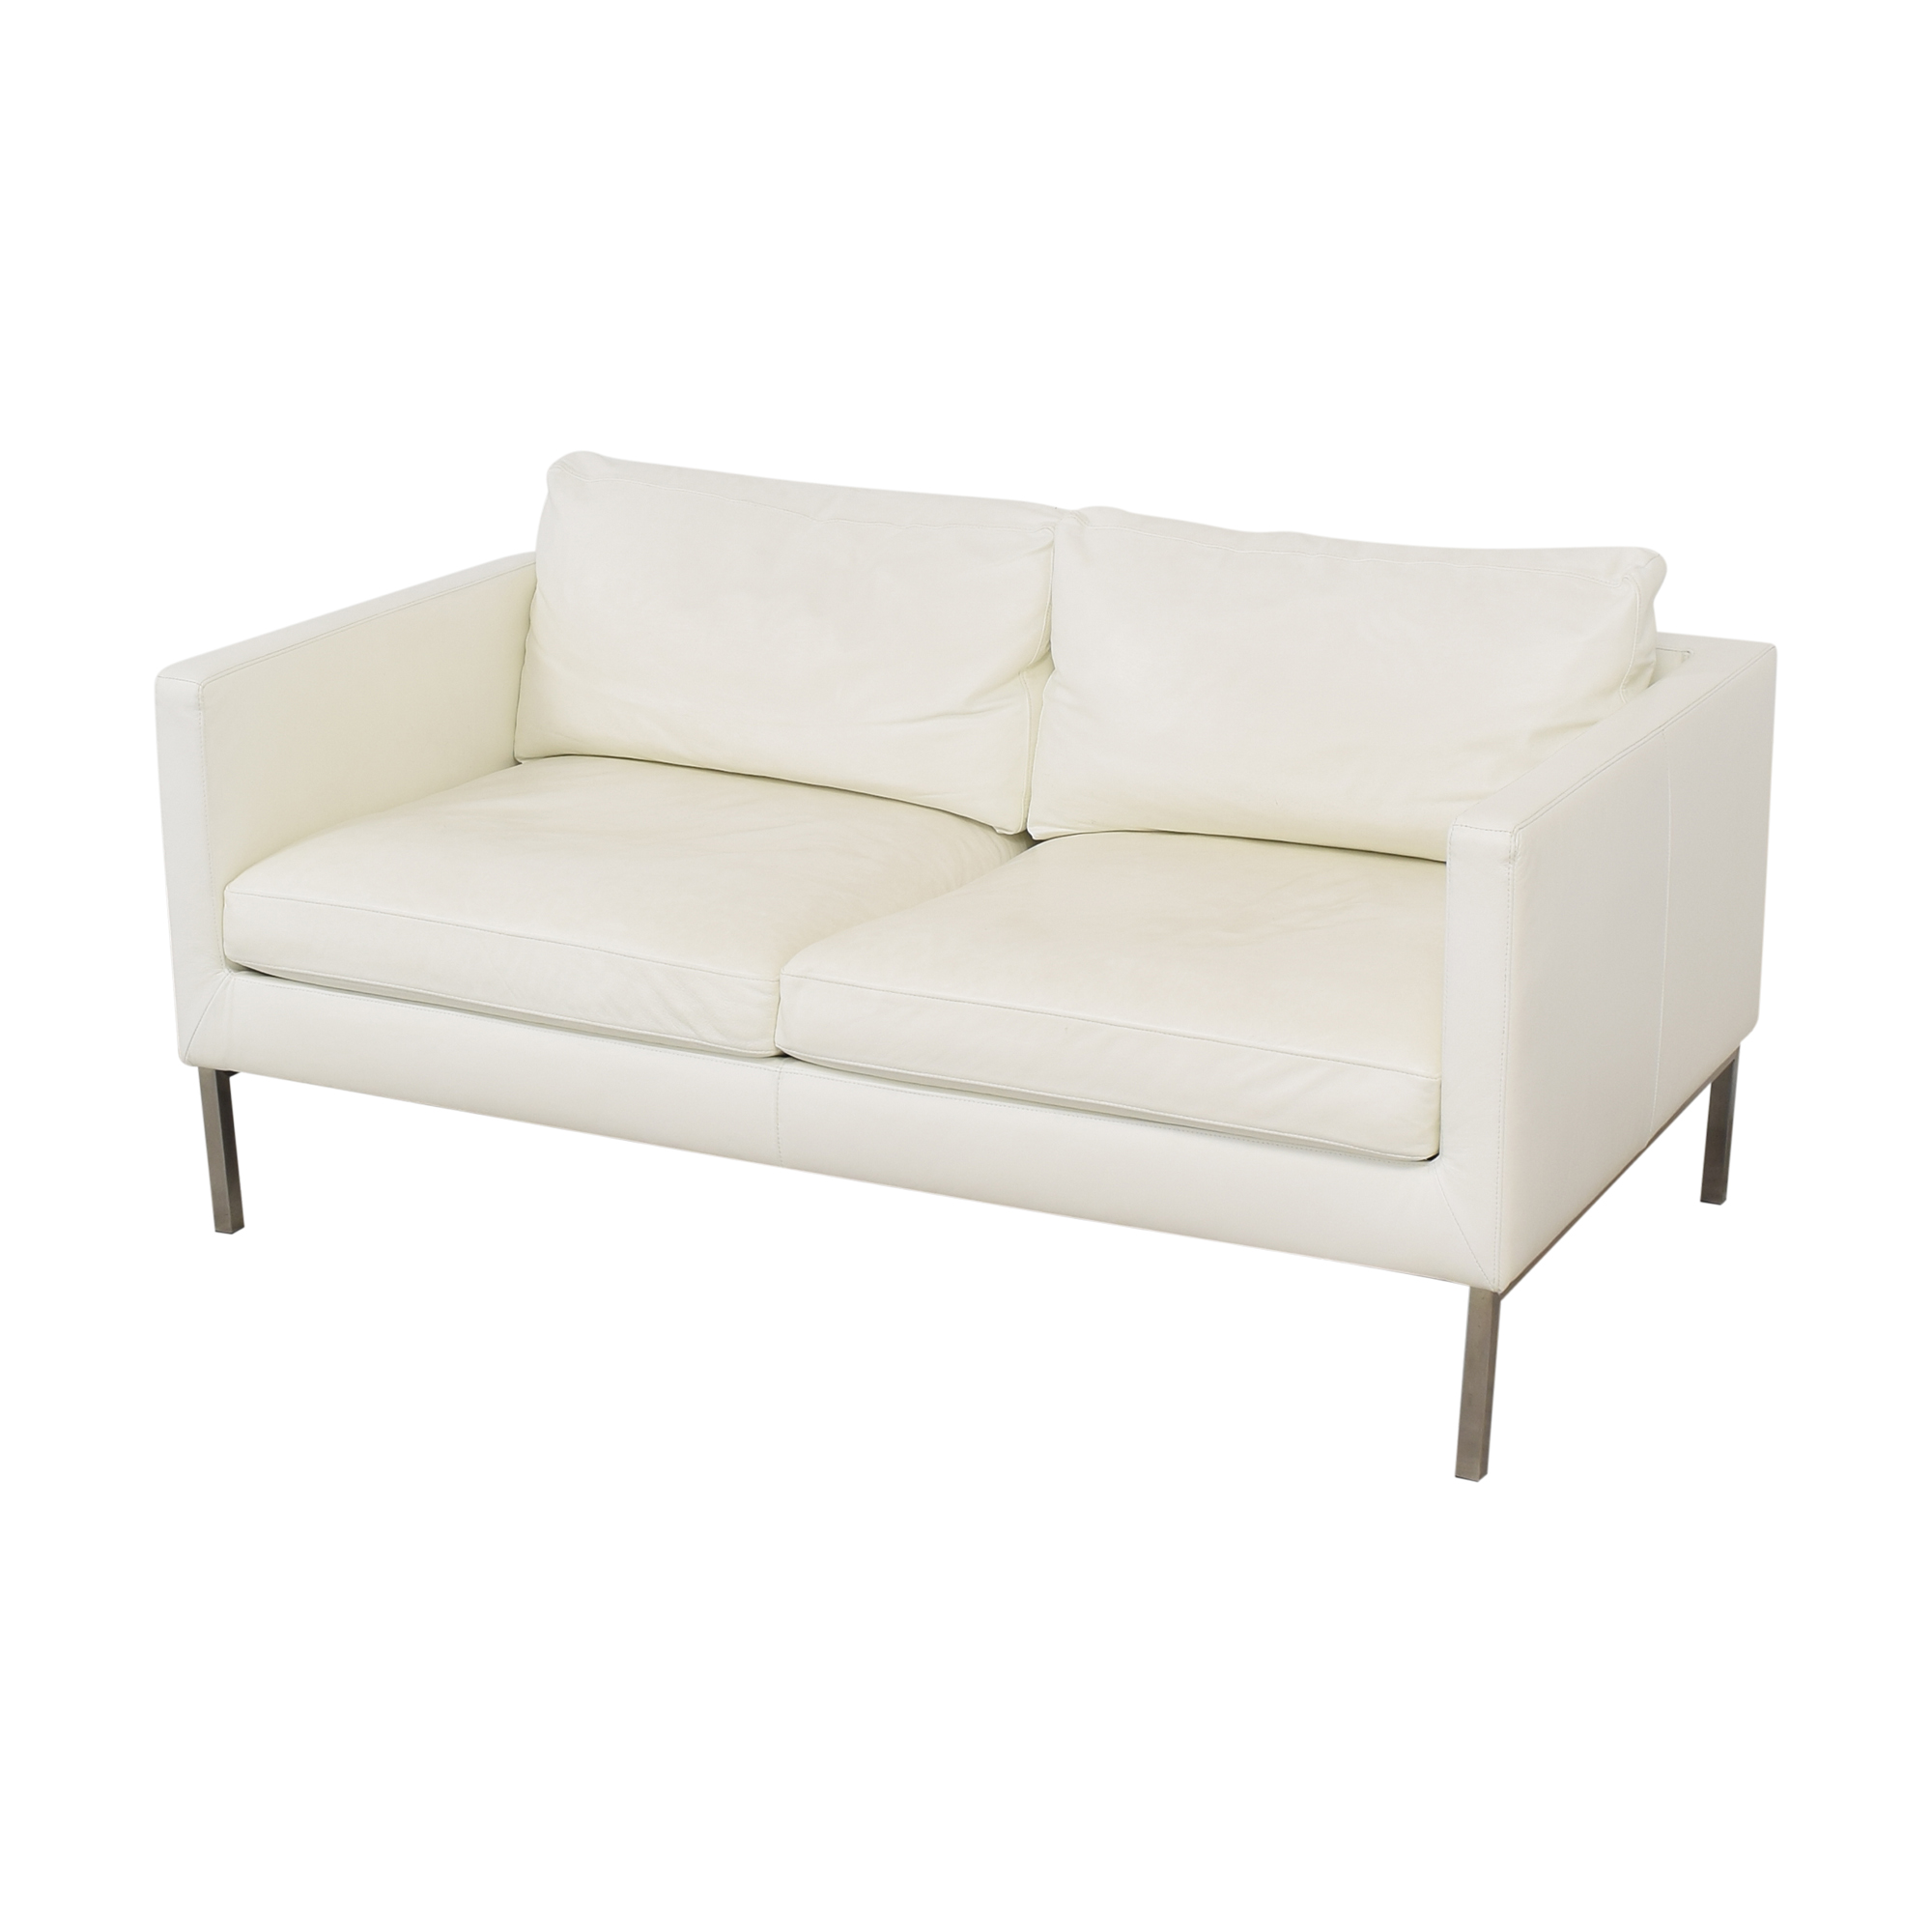 American Leather American Leather Two Cushion Sofa second hand